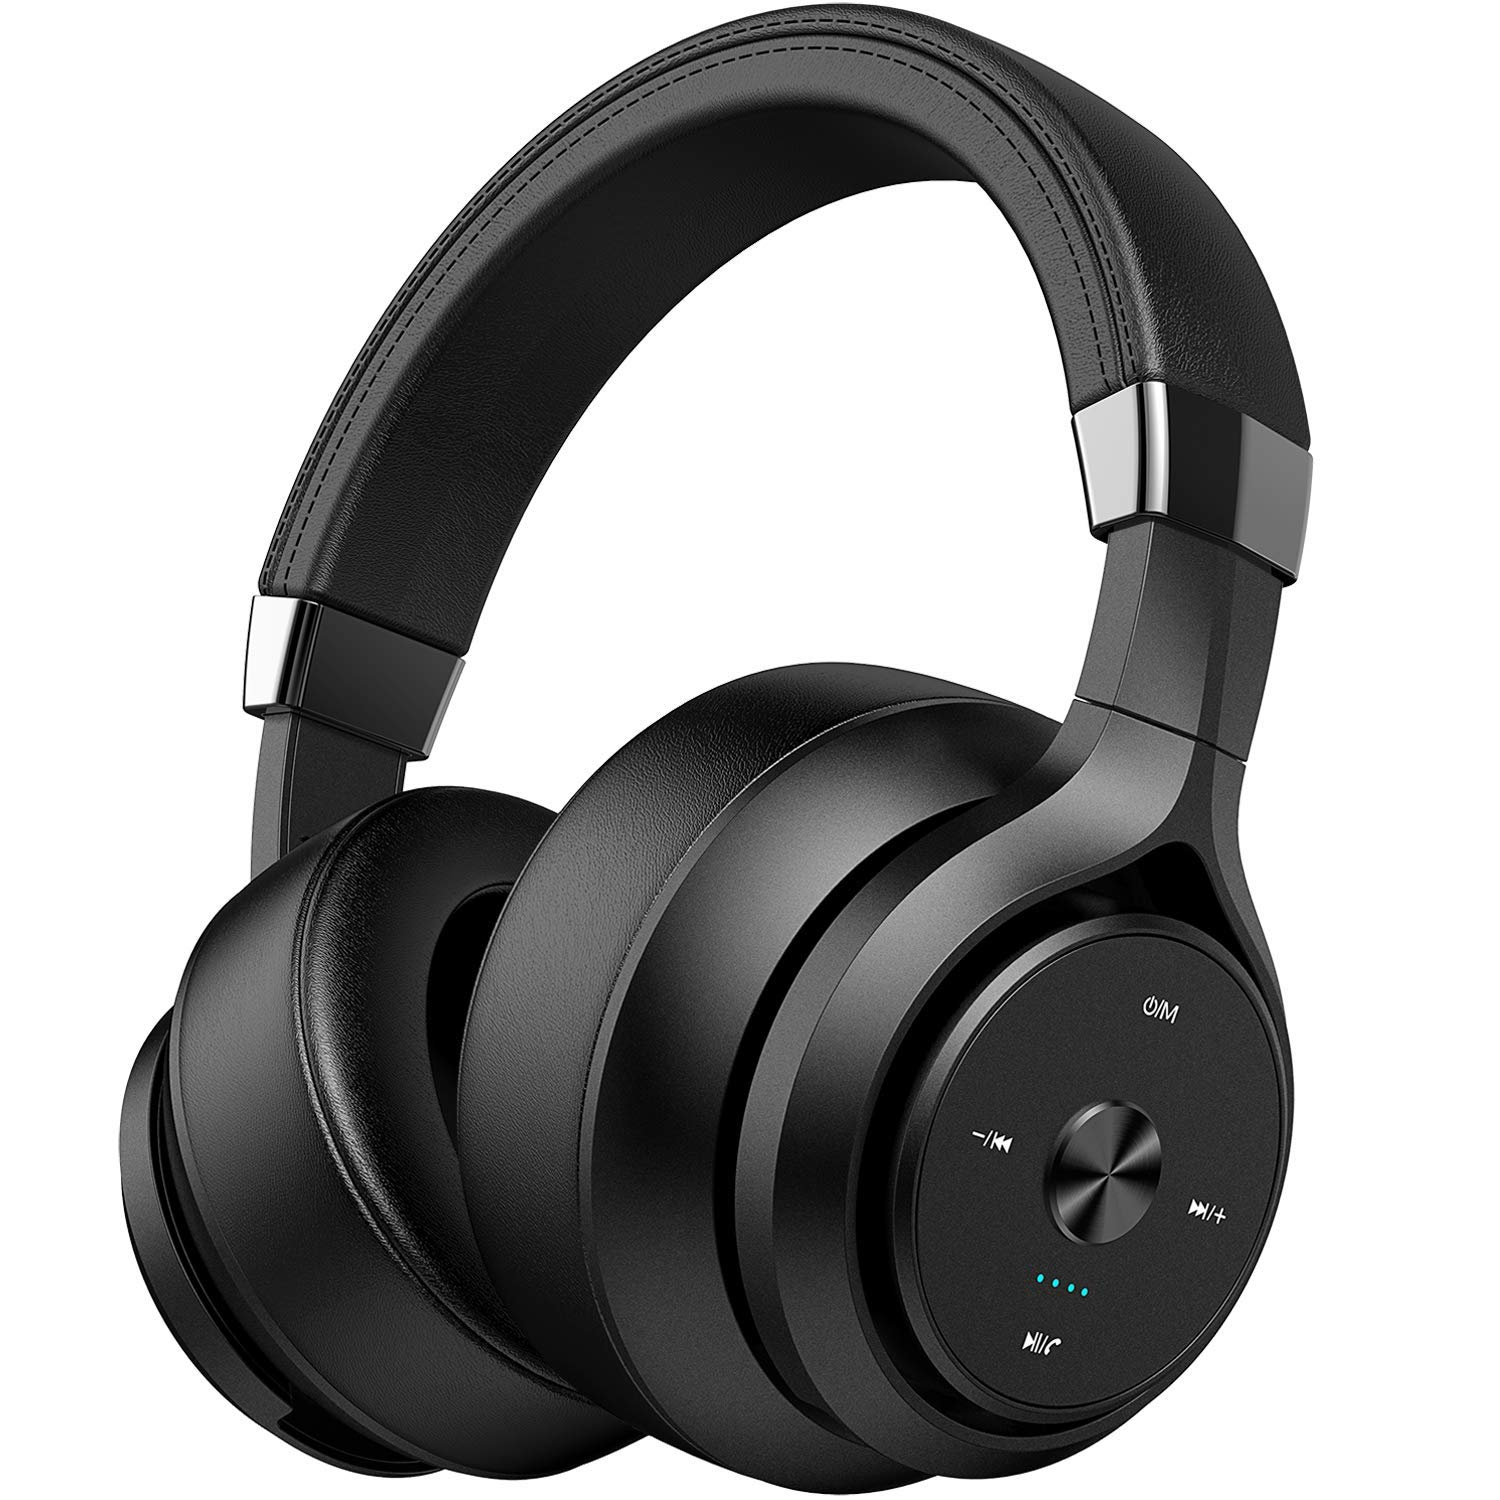 Picun Dual Driver 40 Hours Wireless Headphones Over Ear, EQ Deep Bass HiFi  Stereo Bluetooth Headphones with HD Mic, Battery Indicator, Soft Protein